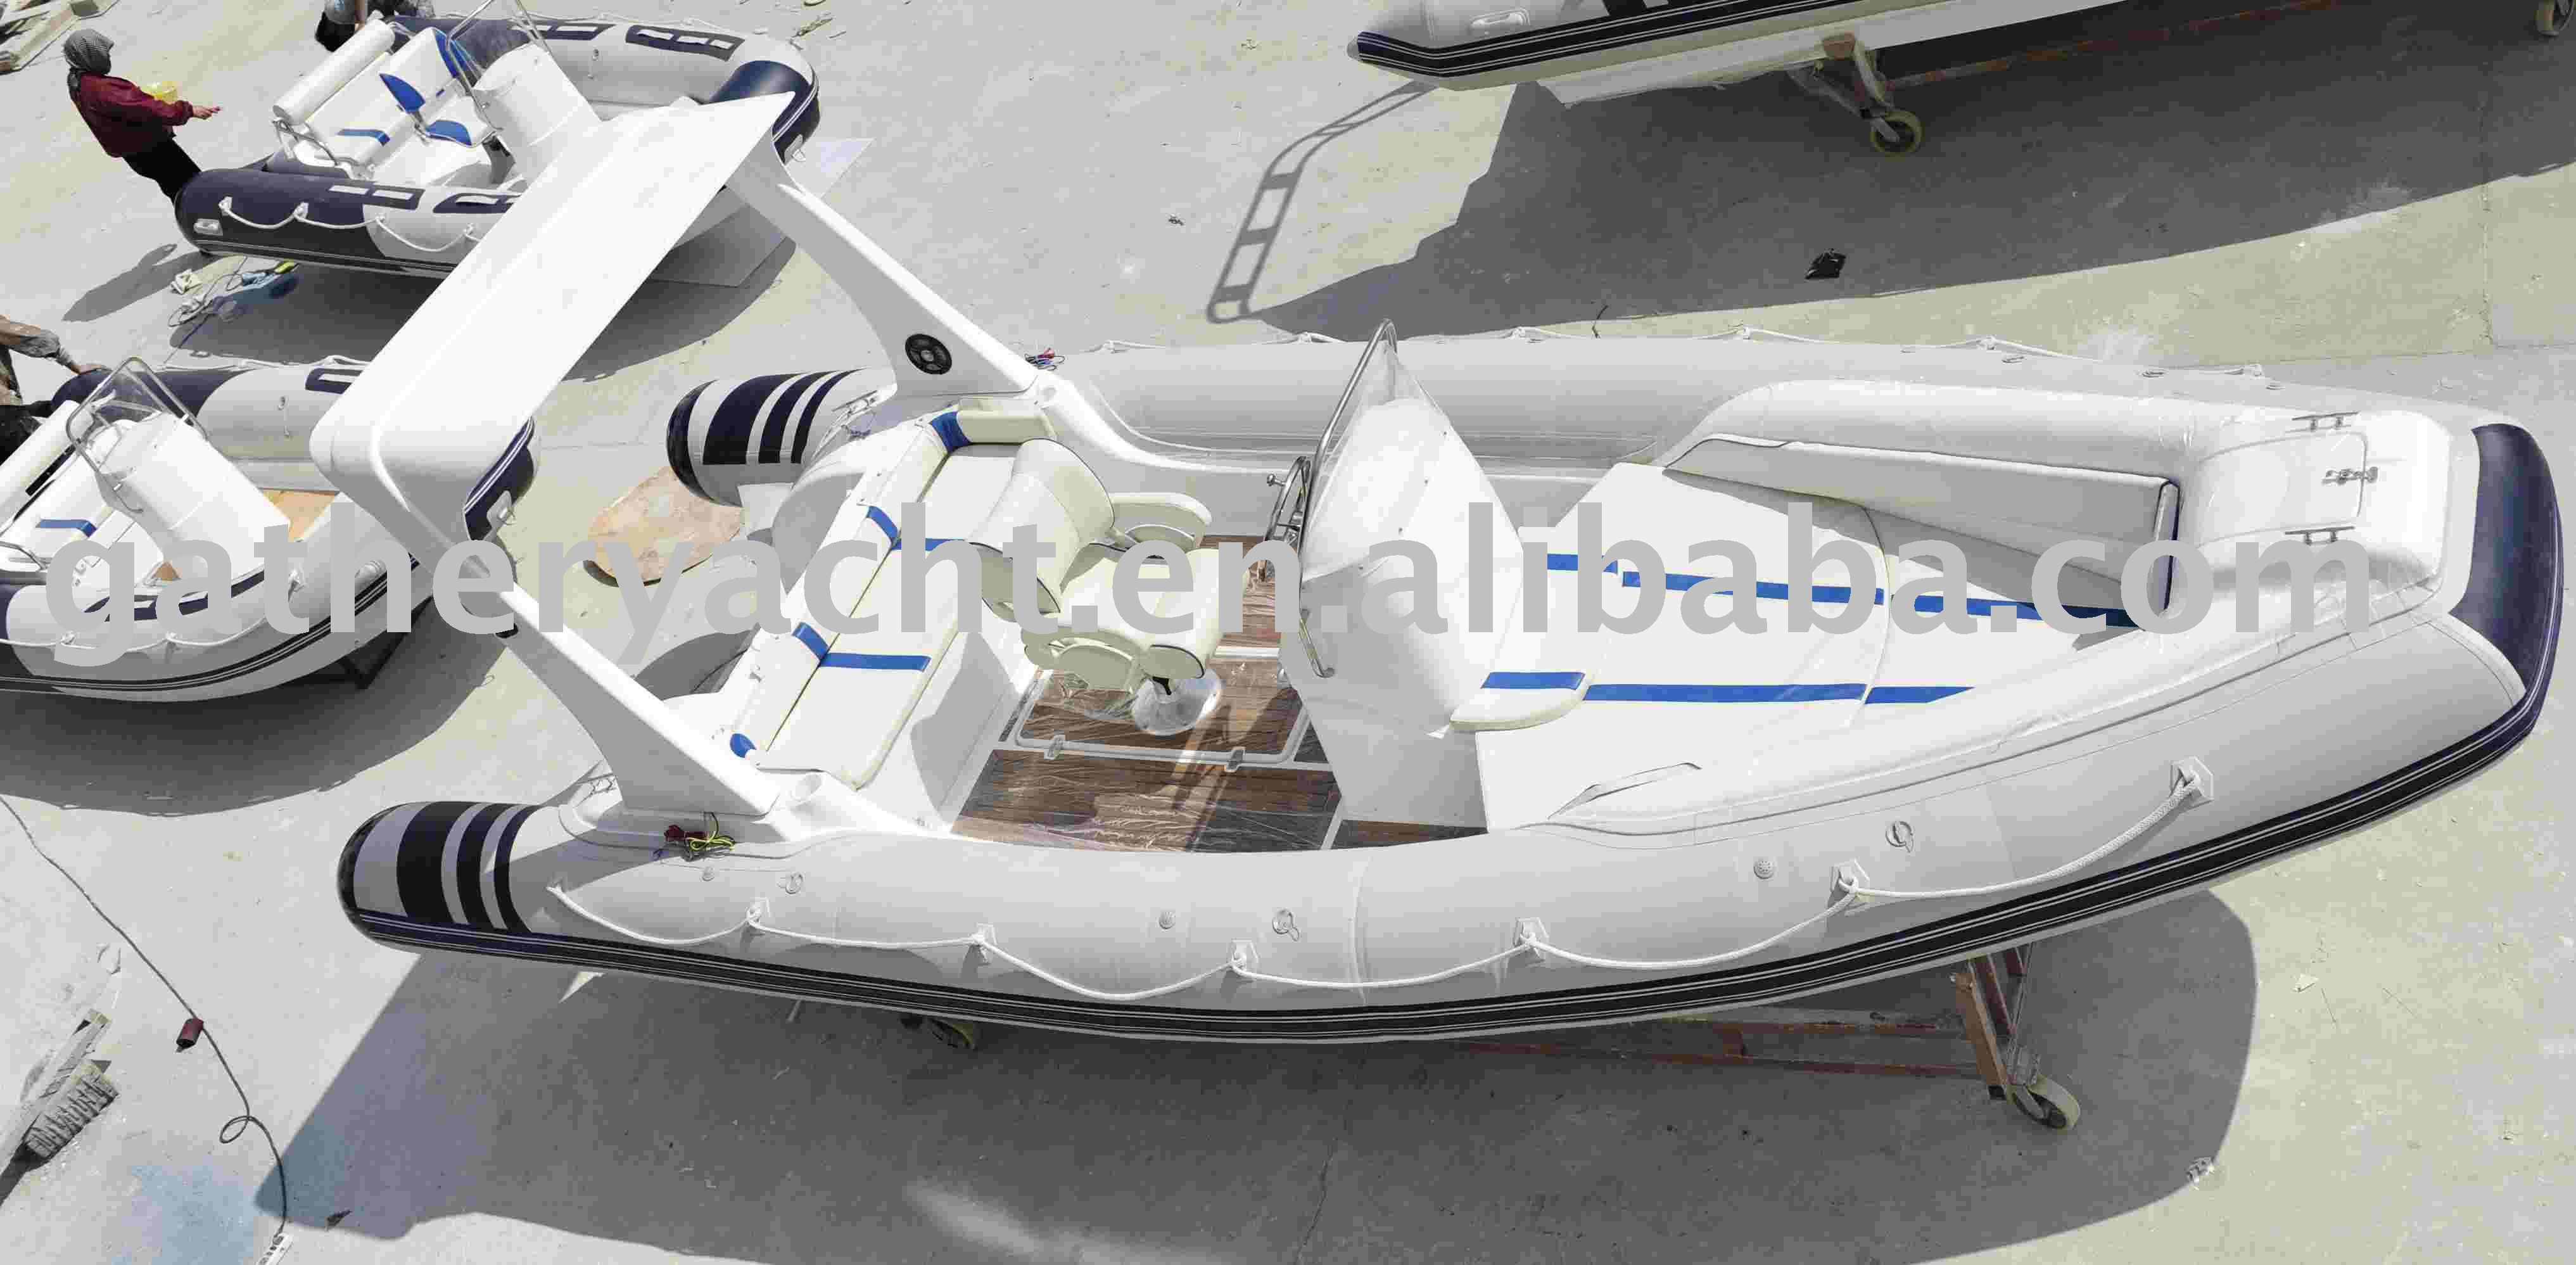 2012 NEW~Luxury Rib boat